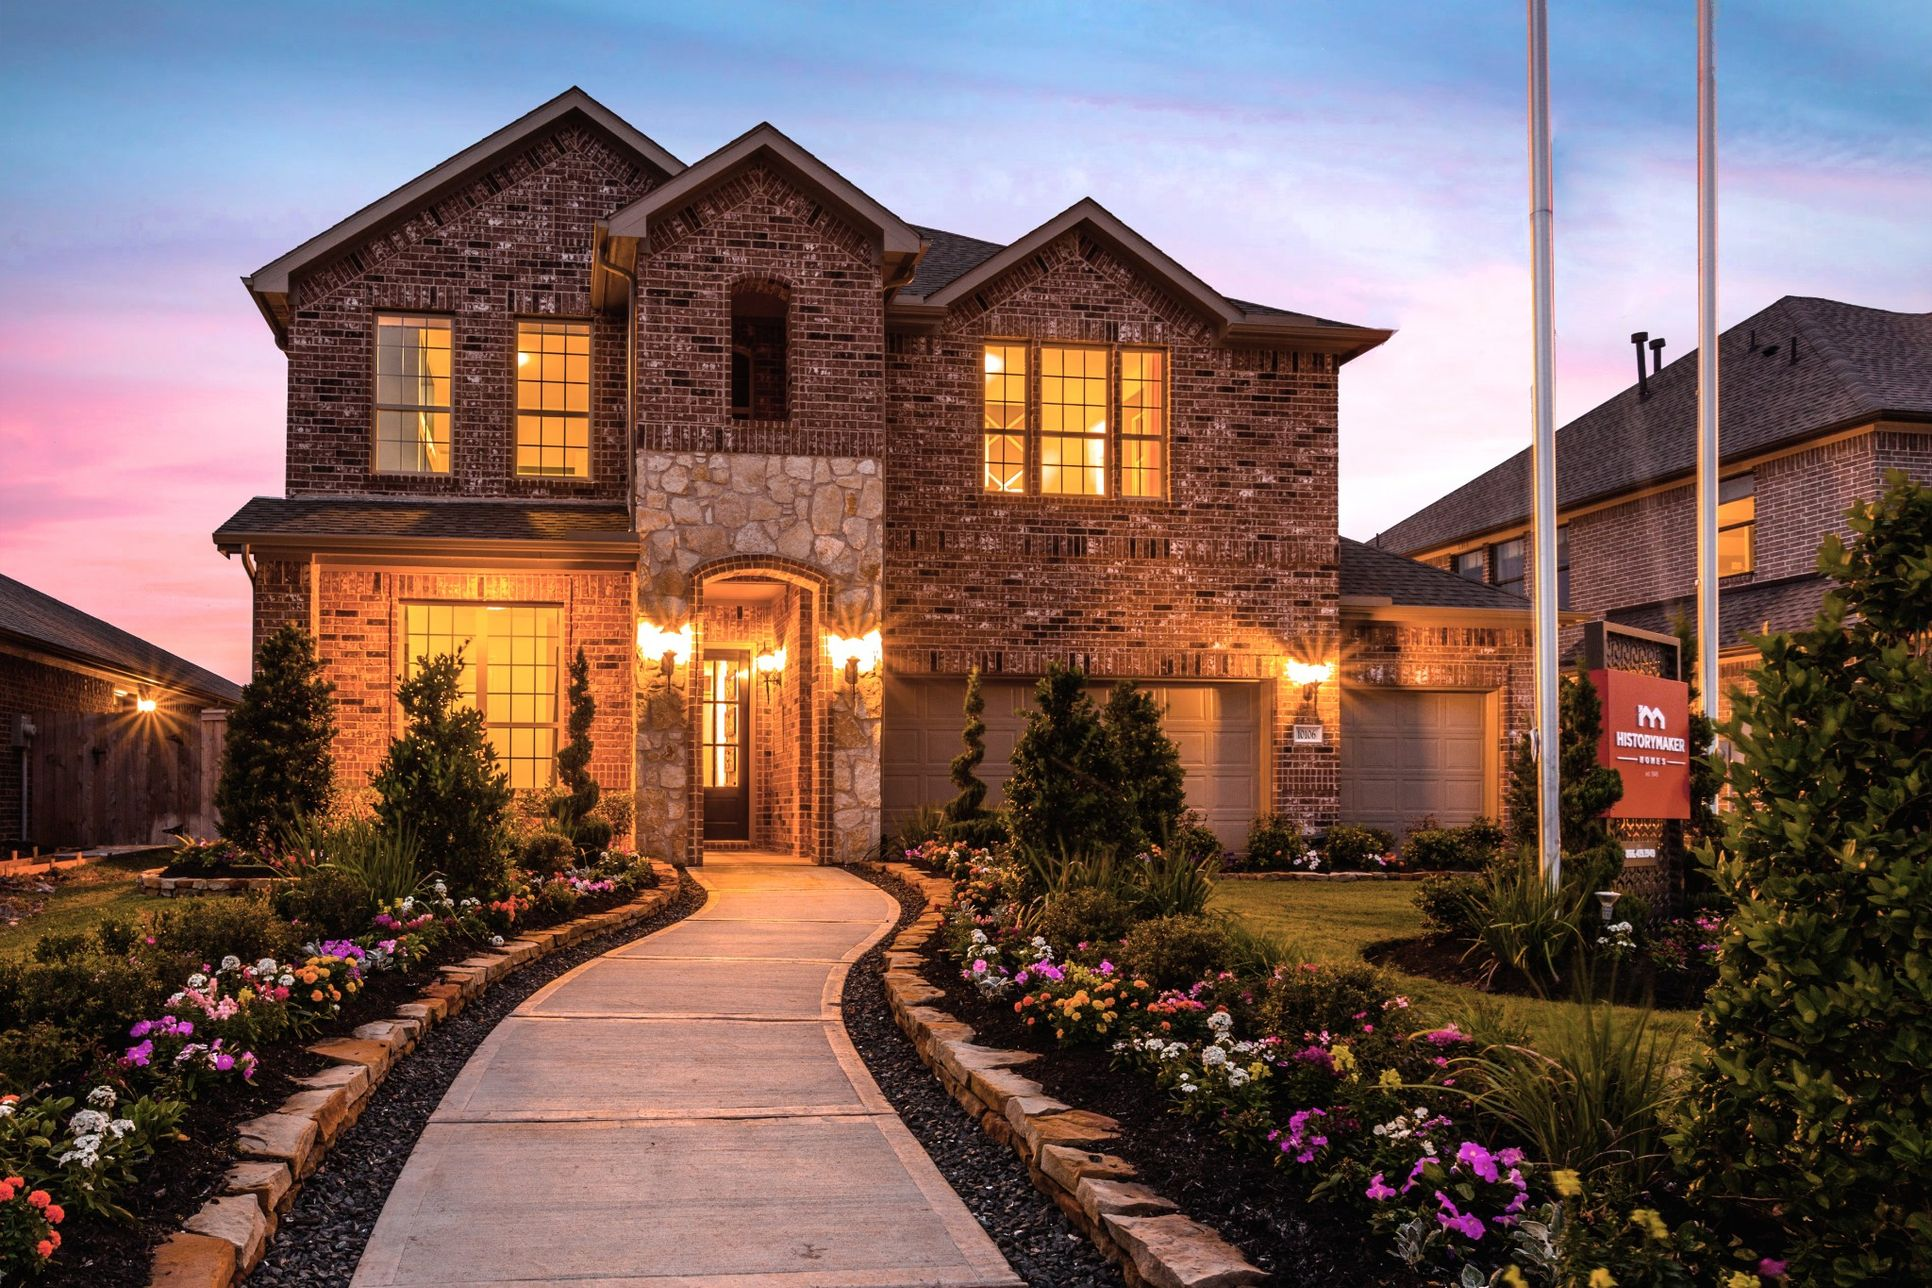 Northstar by HistoryMaker Homes